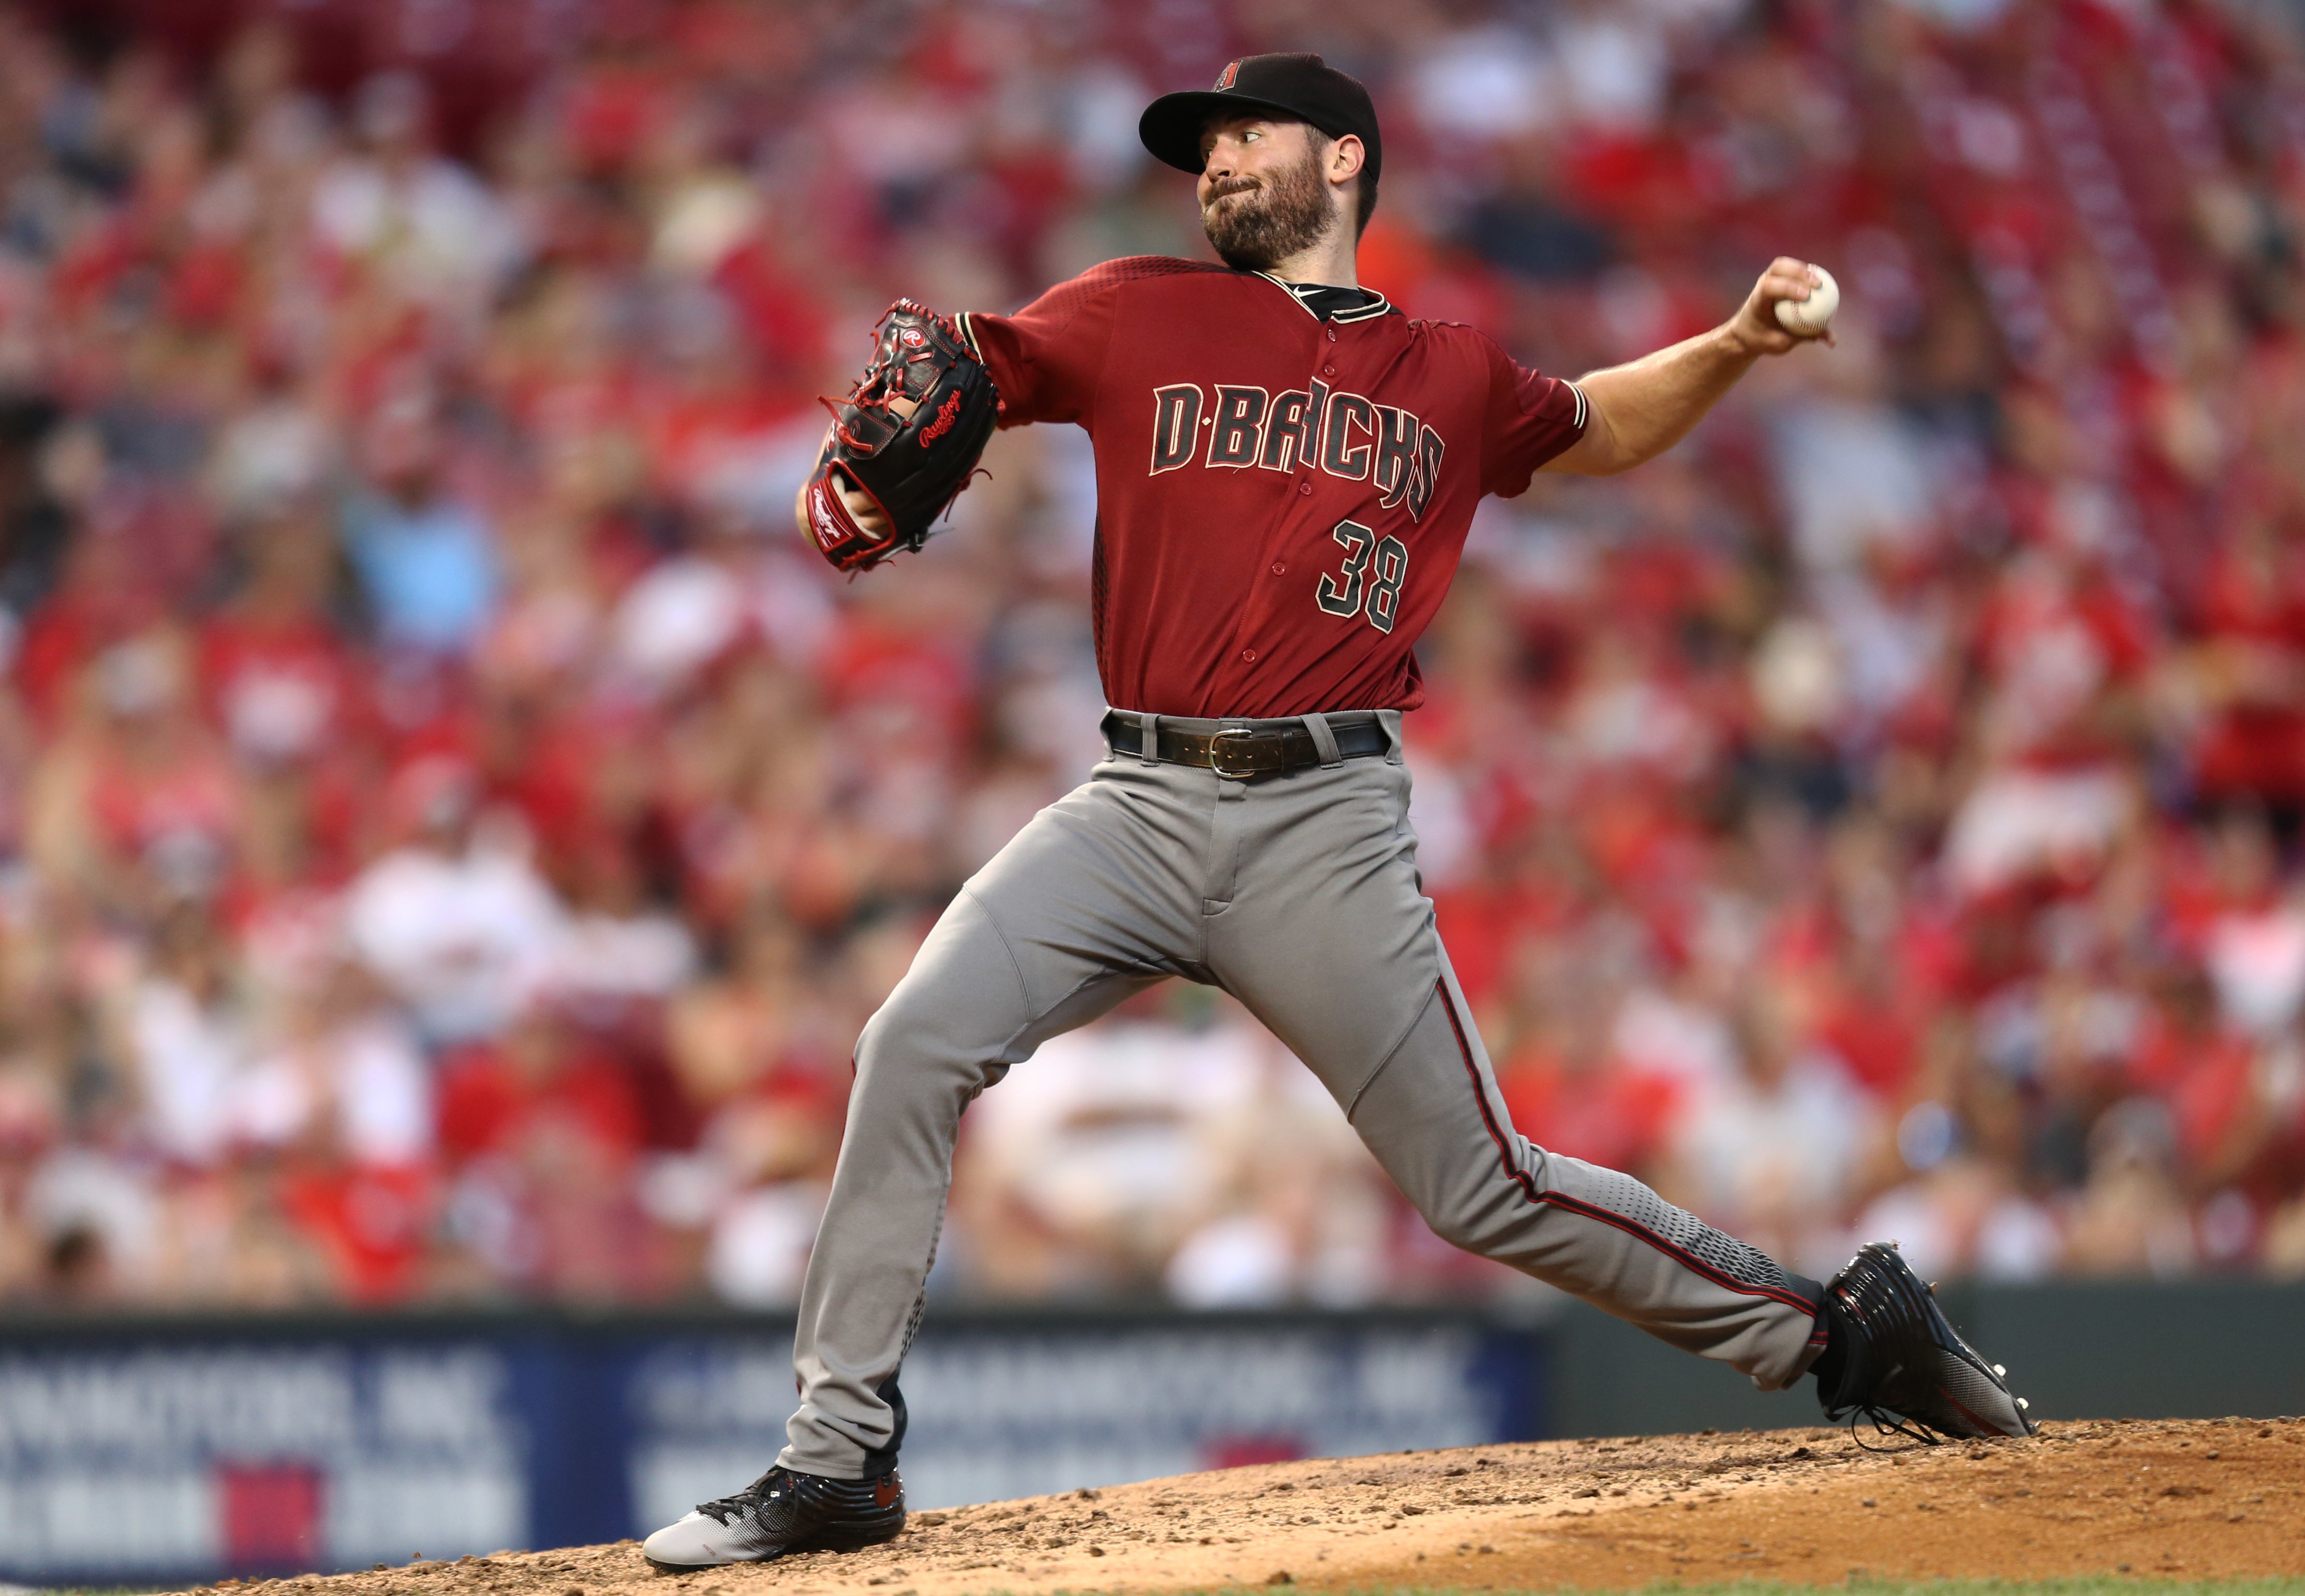 Arizona Diamondbacks starting pitcher Robbie Ray throws in the fourth inning of a baseball game against the Cincinnati Reds, Saturday, July 23, 2016, in Cincinnati. (AP Photo/Aaron Doster)